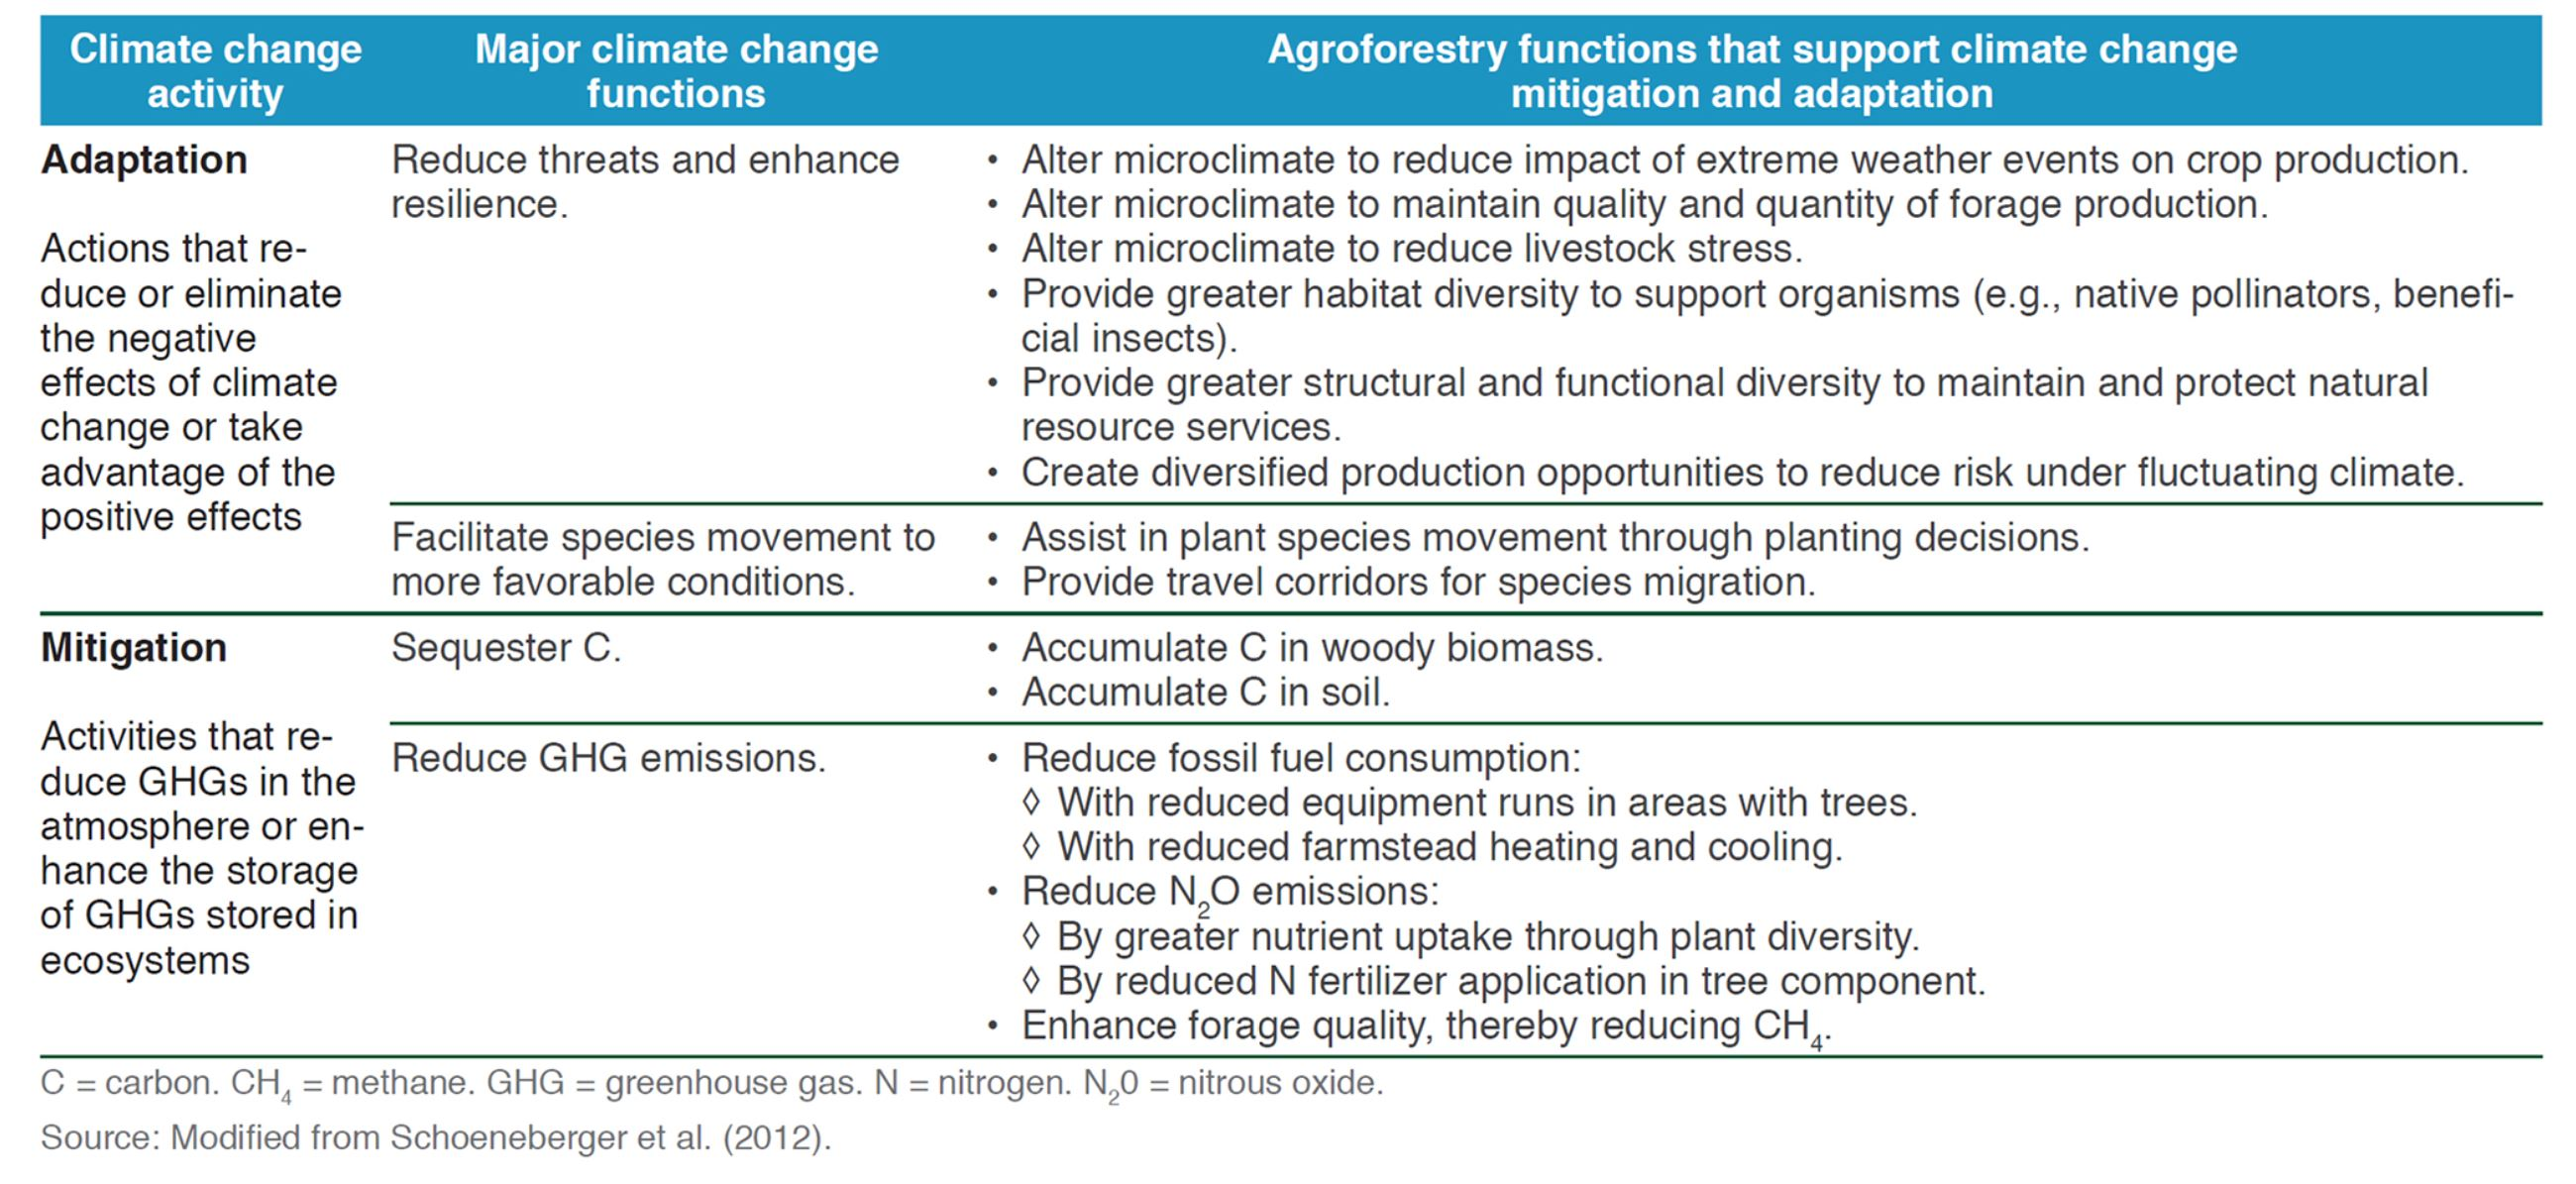 Table 1. Agroforestry functions that support climate change adaptation and mitigation